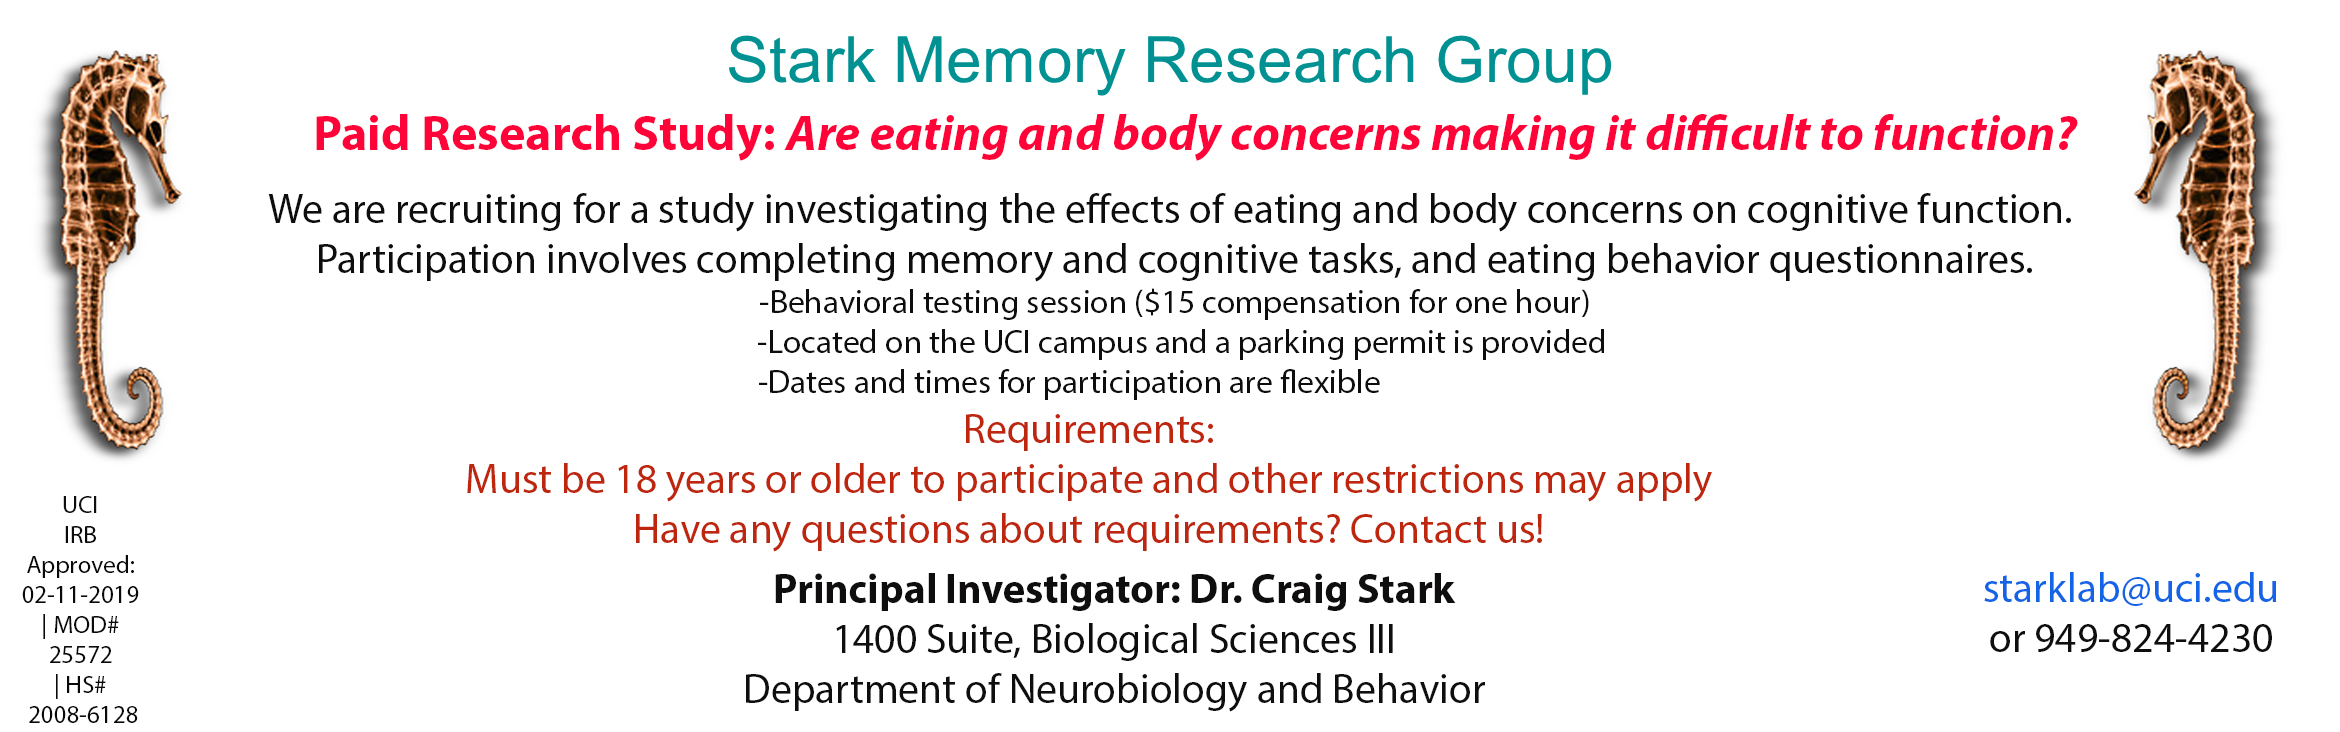 Stark Memory Research Group,  Paid Research Study: Are eating and body concerns making it difficult to function?  We are recruiting for a study investigating the effects of eating and body concerns on cognitive function.  Participation involves completing